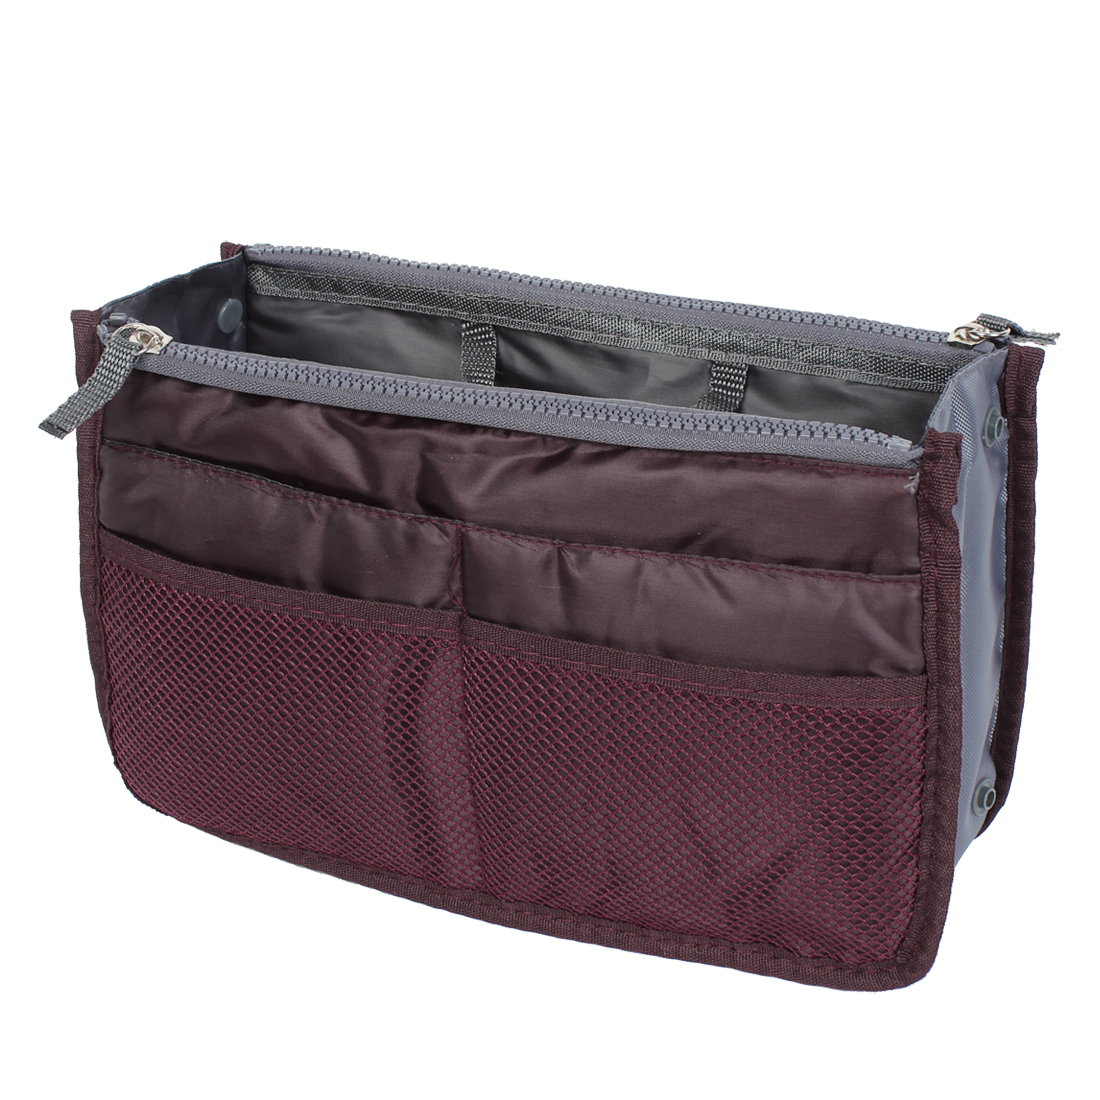 Burgundy Cosmetic Makeup Storage Handbag Tote Insert Purse Organizer Pouch Bag